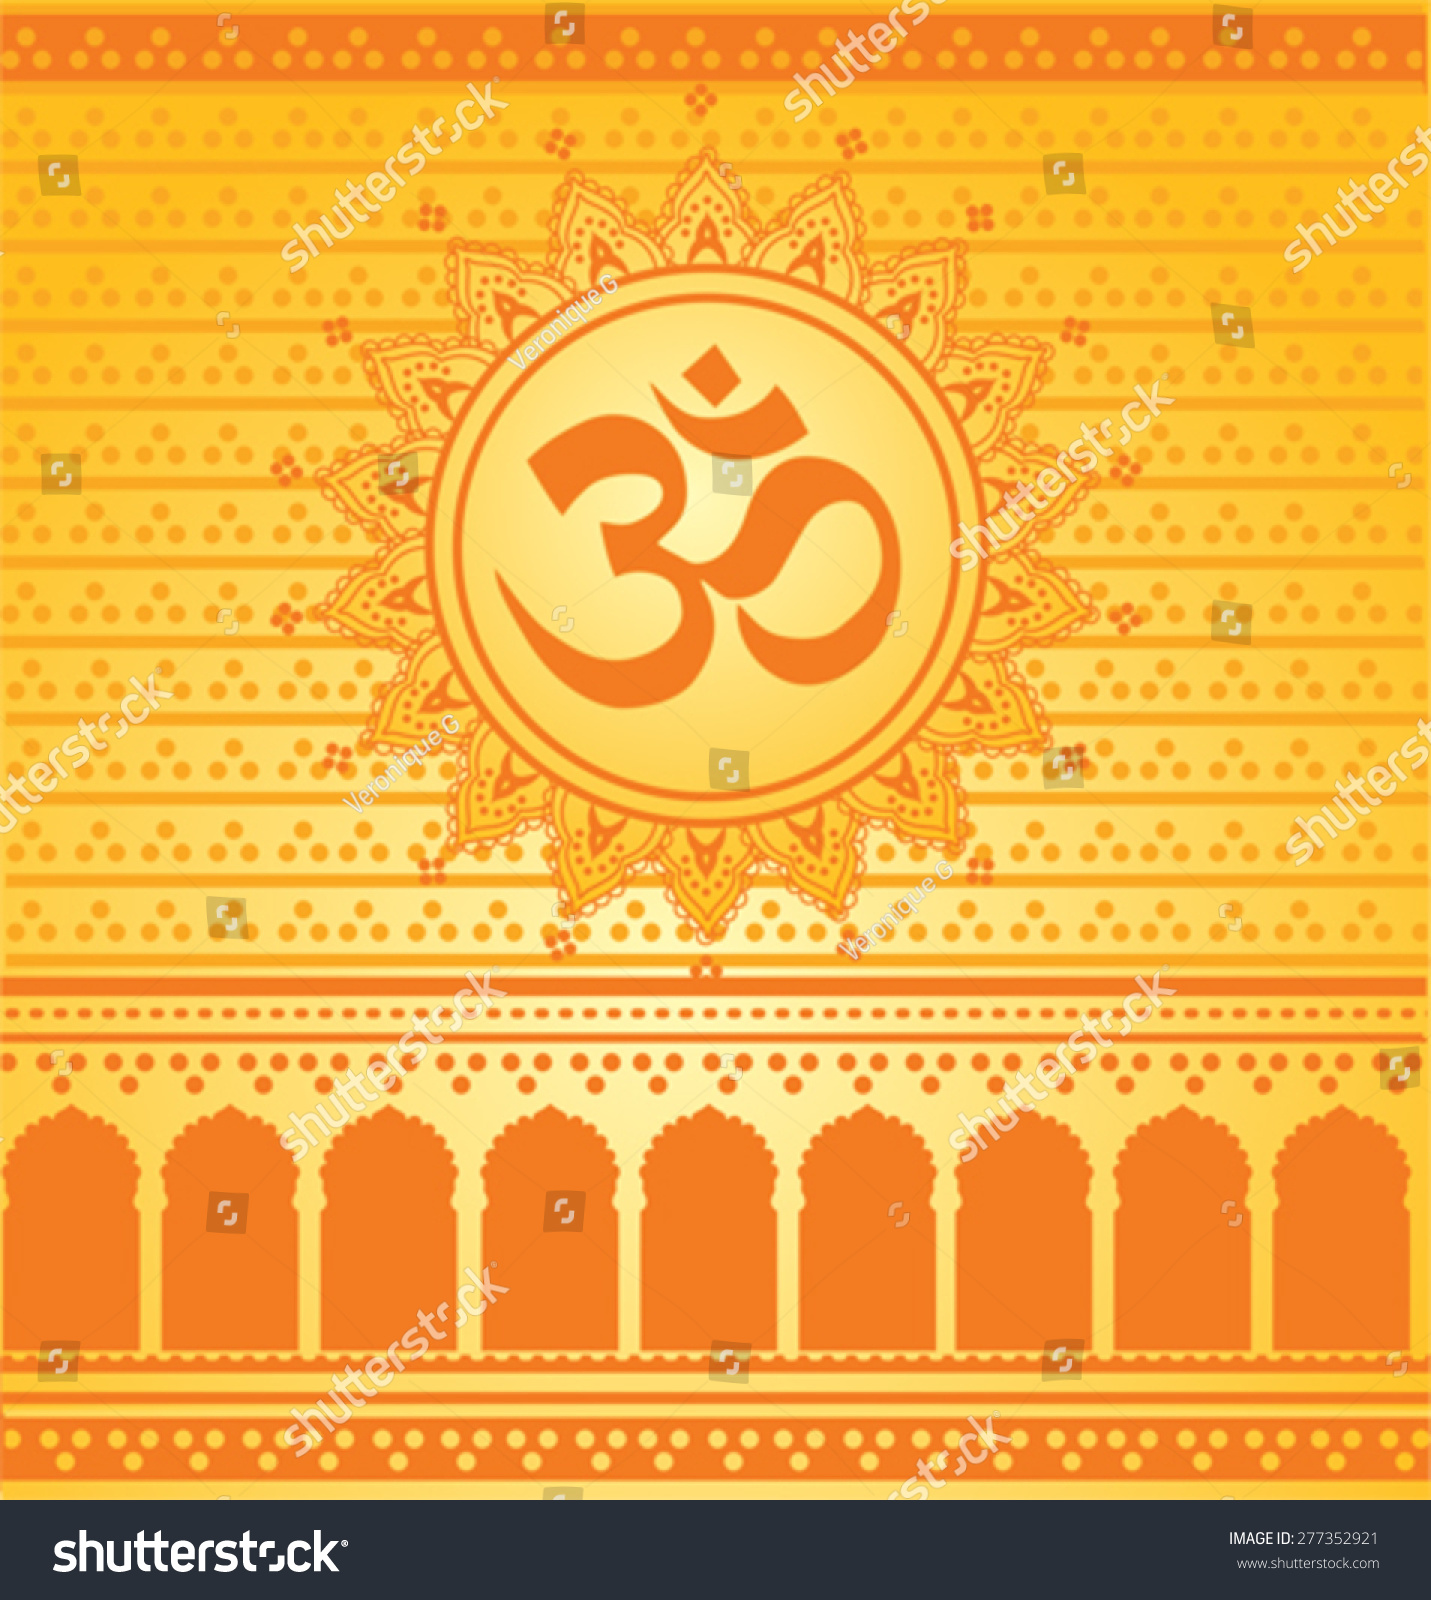 Bright yellow orange indian hindu temple stock vector 277352921 bright yellow and orange indian hindu temple background with aum symbol inside henna mandala biocorpaavc Gallery